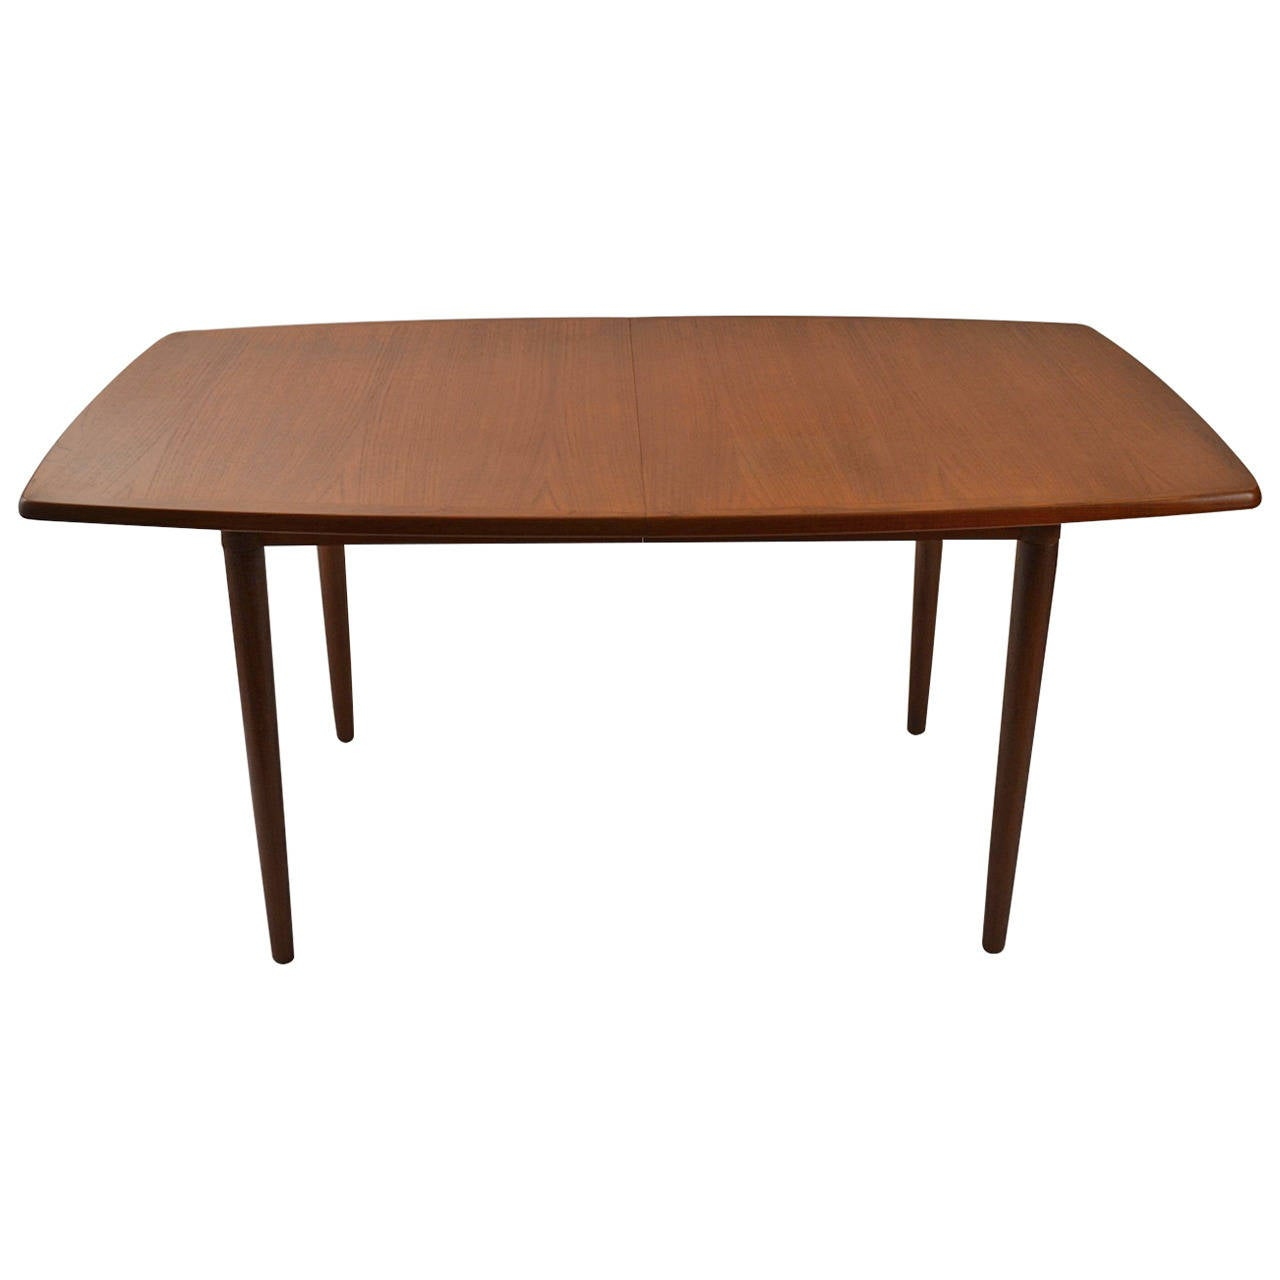 Danish modern teak dining table with two leaves at 1stdibs for Dining room table for 2